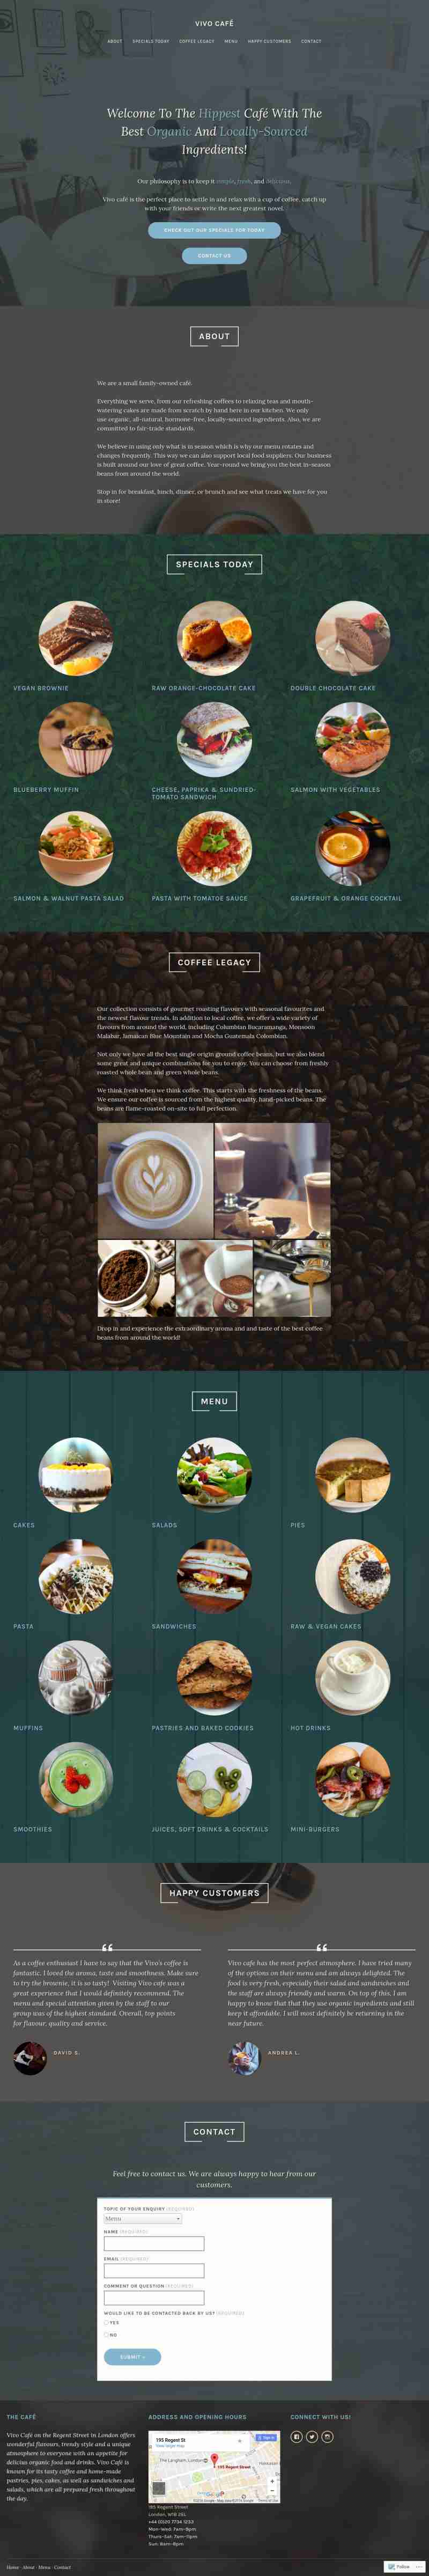 Vivo Café portfolio website's fullscreen view